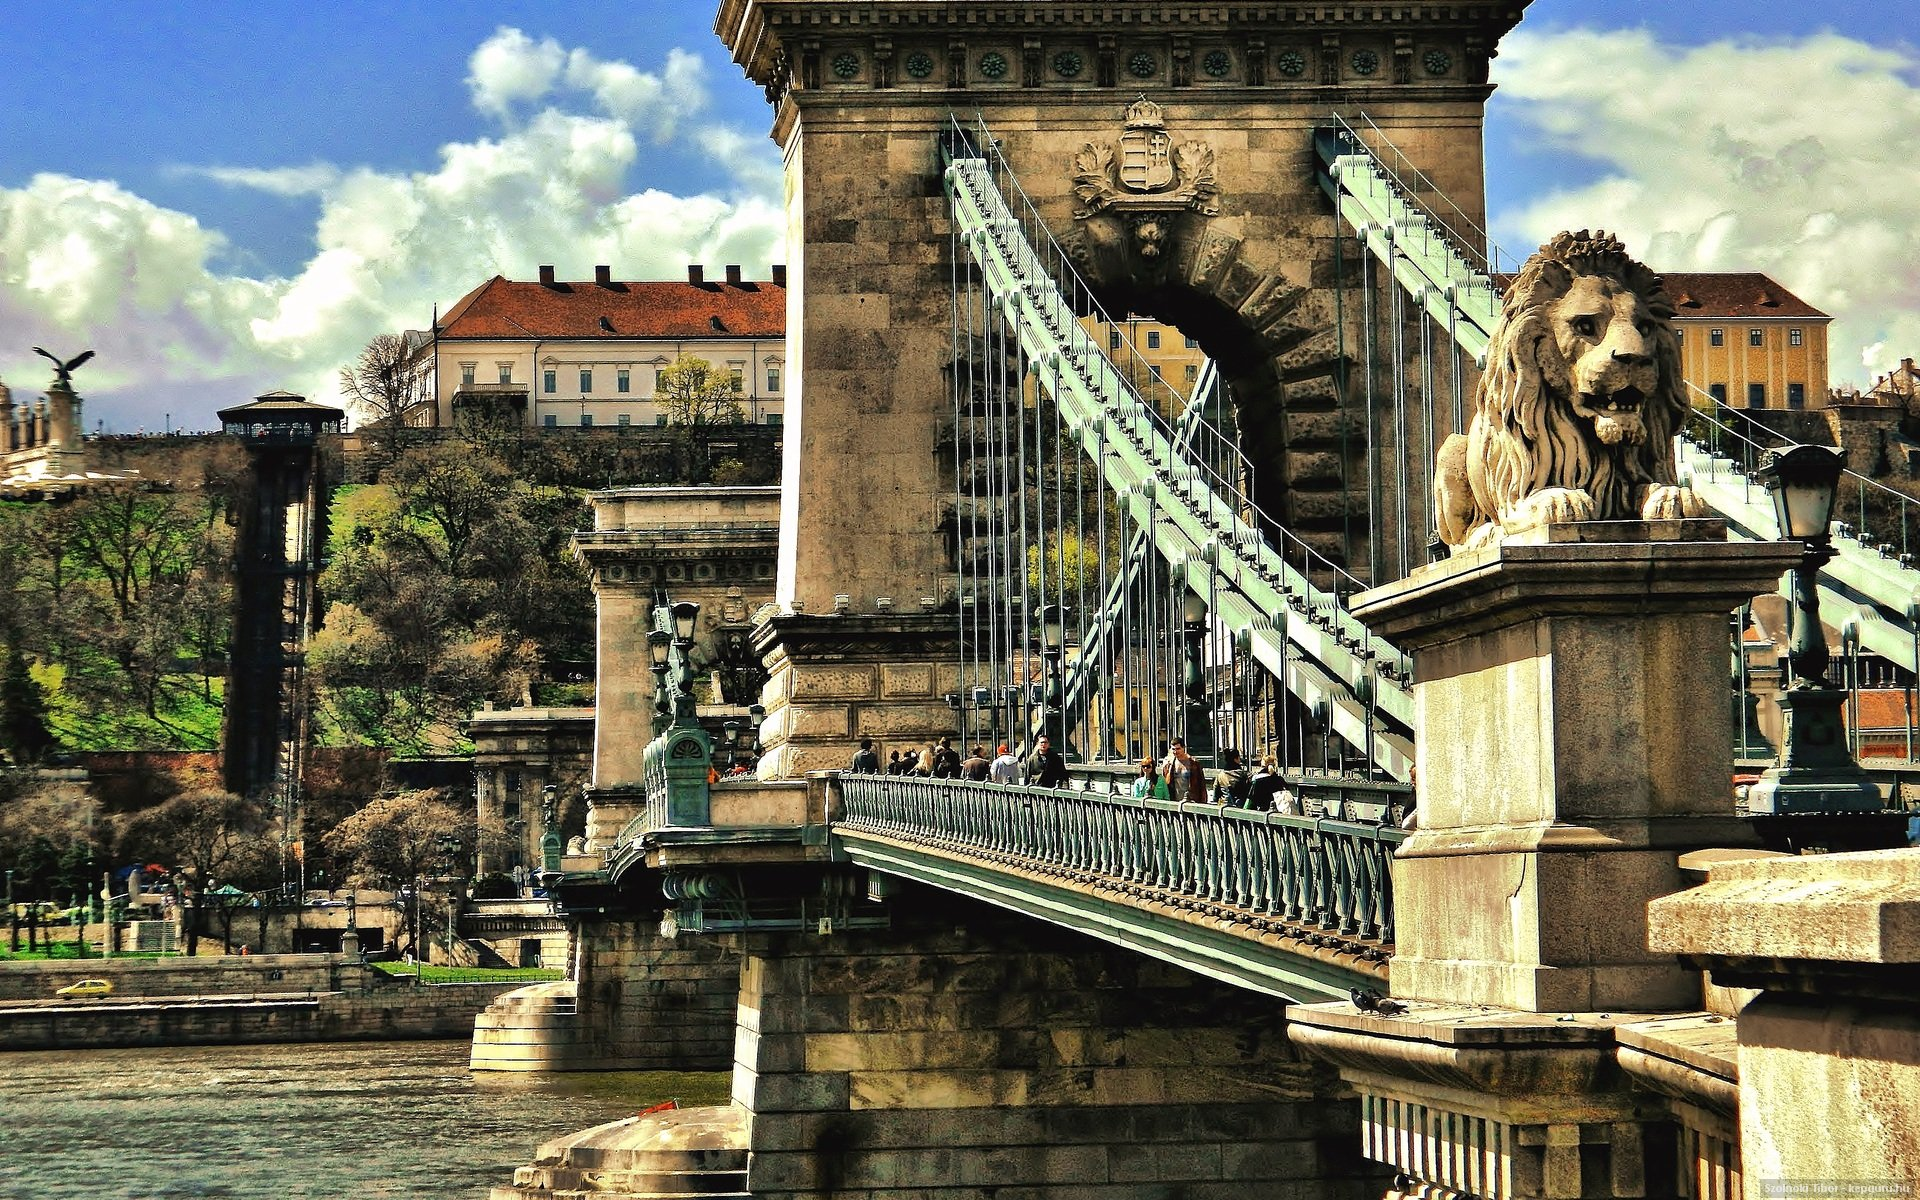 How Budapest became what it is today